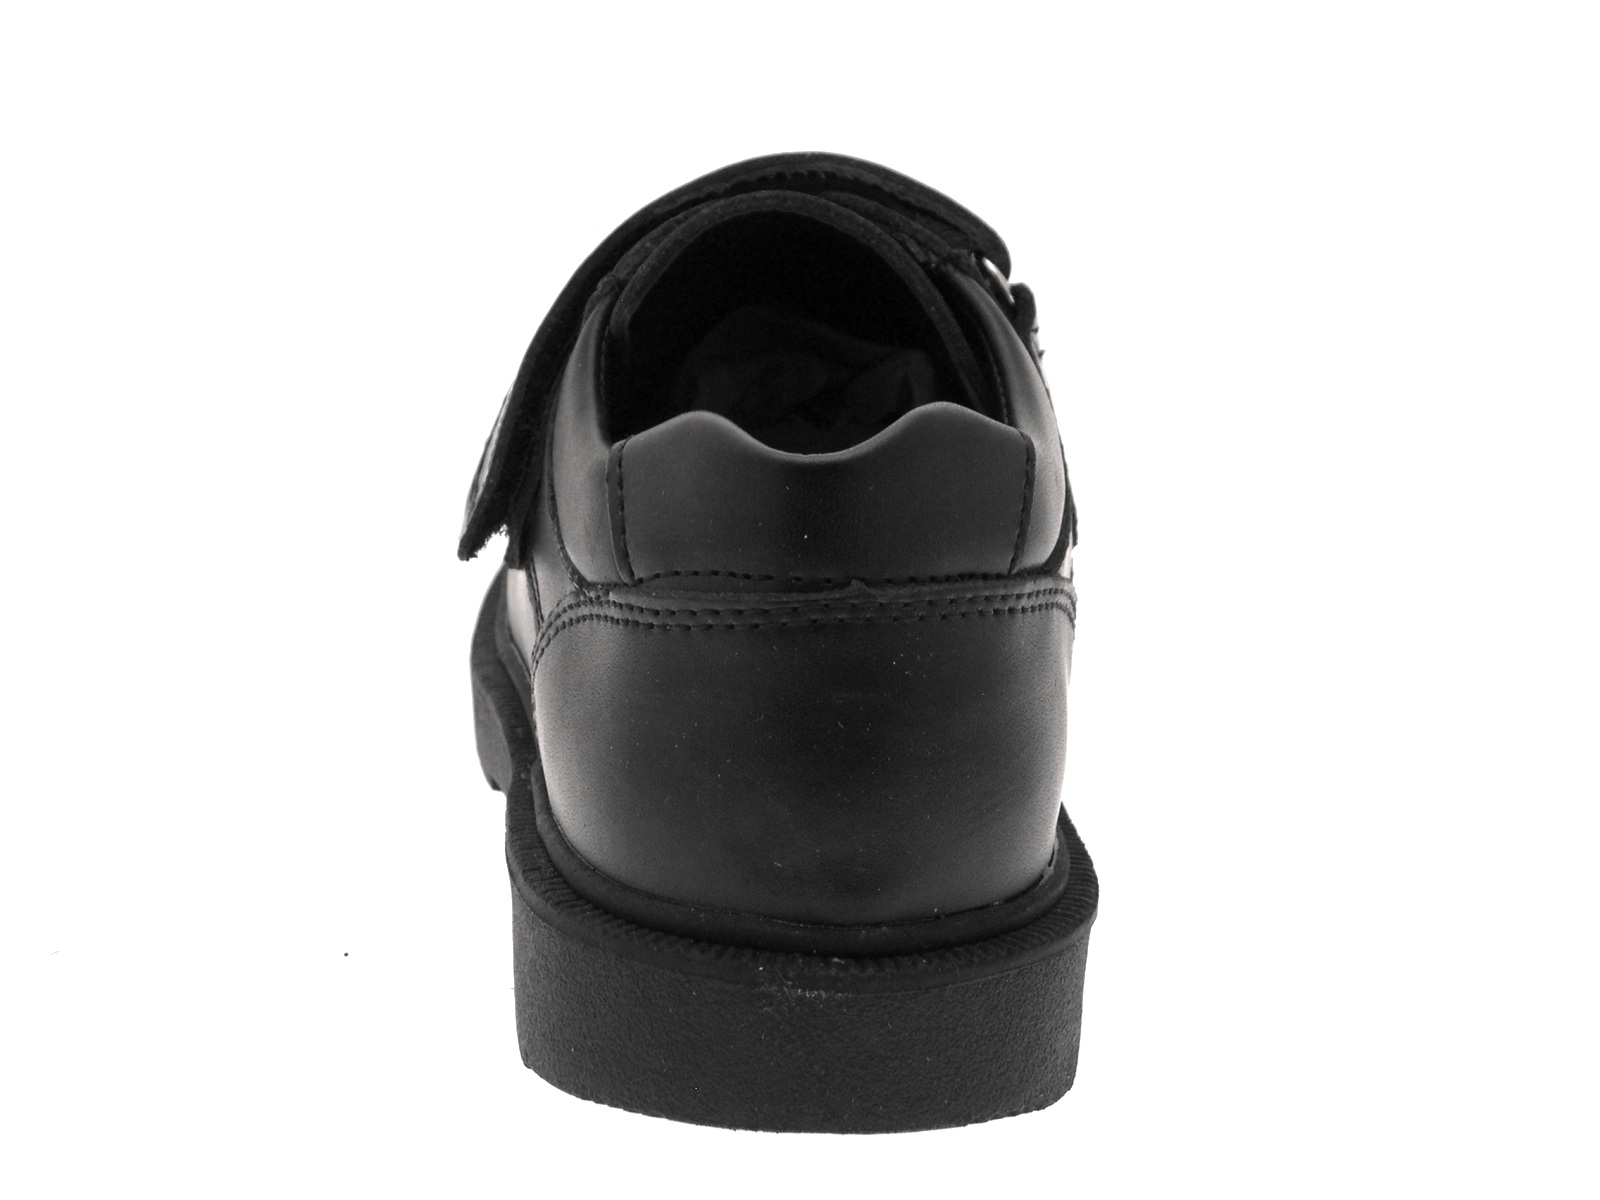 Boys Black Leather School Shoes Sports Trainers Smart Formal Wedding